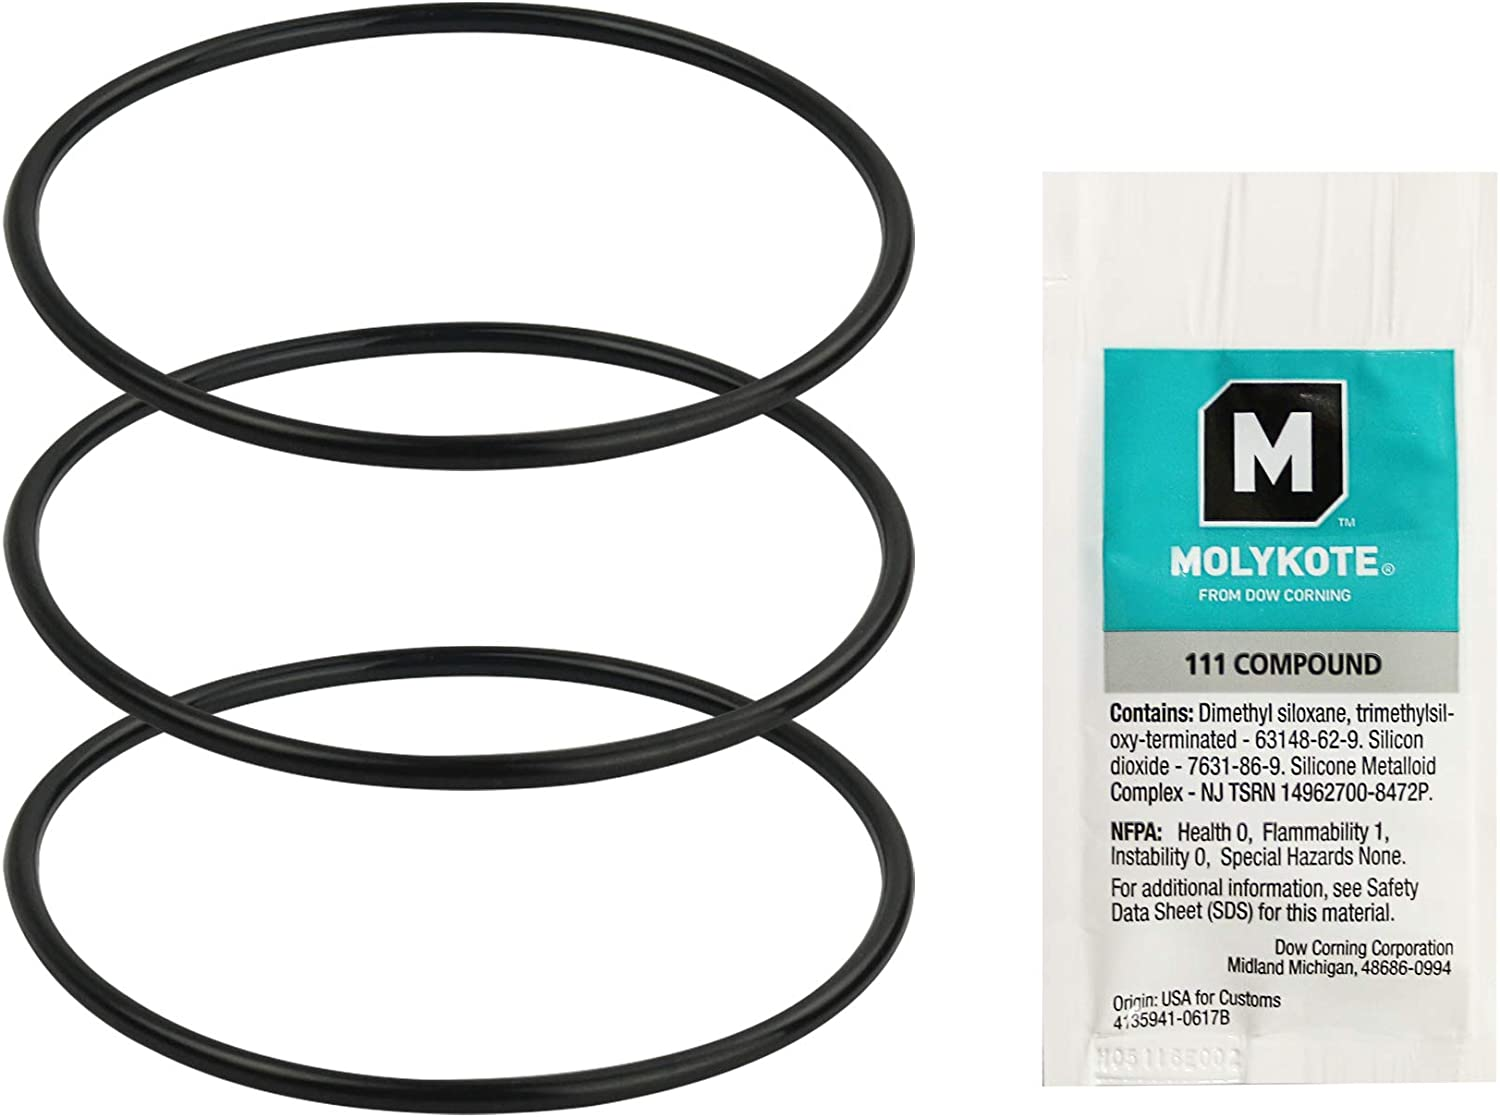 APEC Water Systems Combo Replacement O Rings for Reverse Osmosis Water Filter Housings with Lubricant, Black